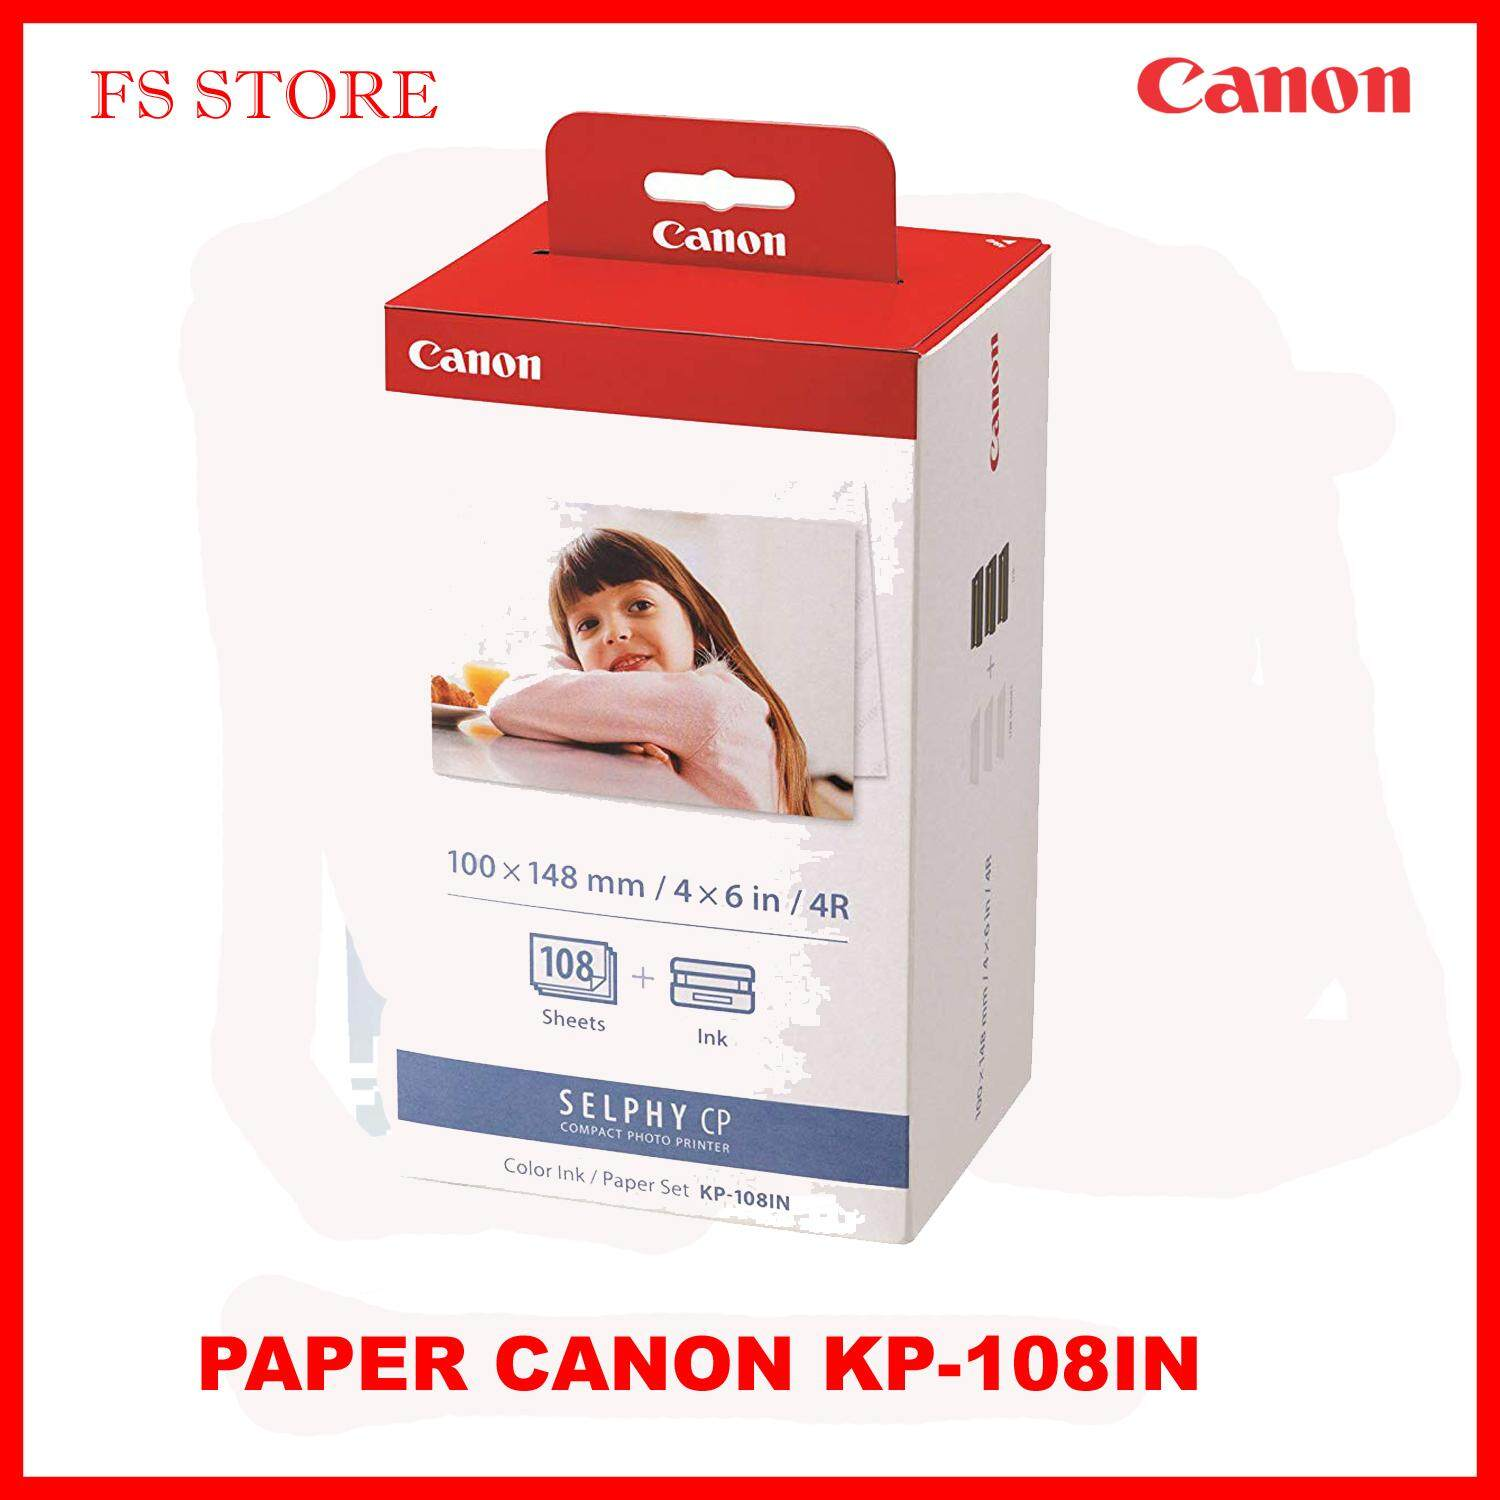 Canon Photo for the Best Prices in Malaysia